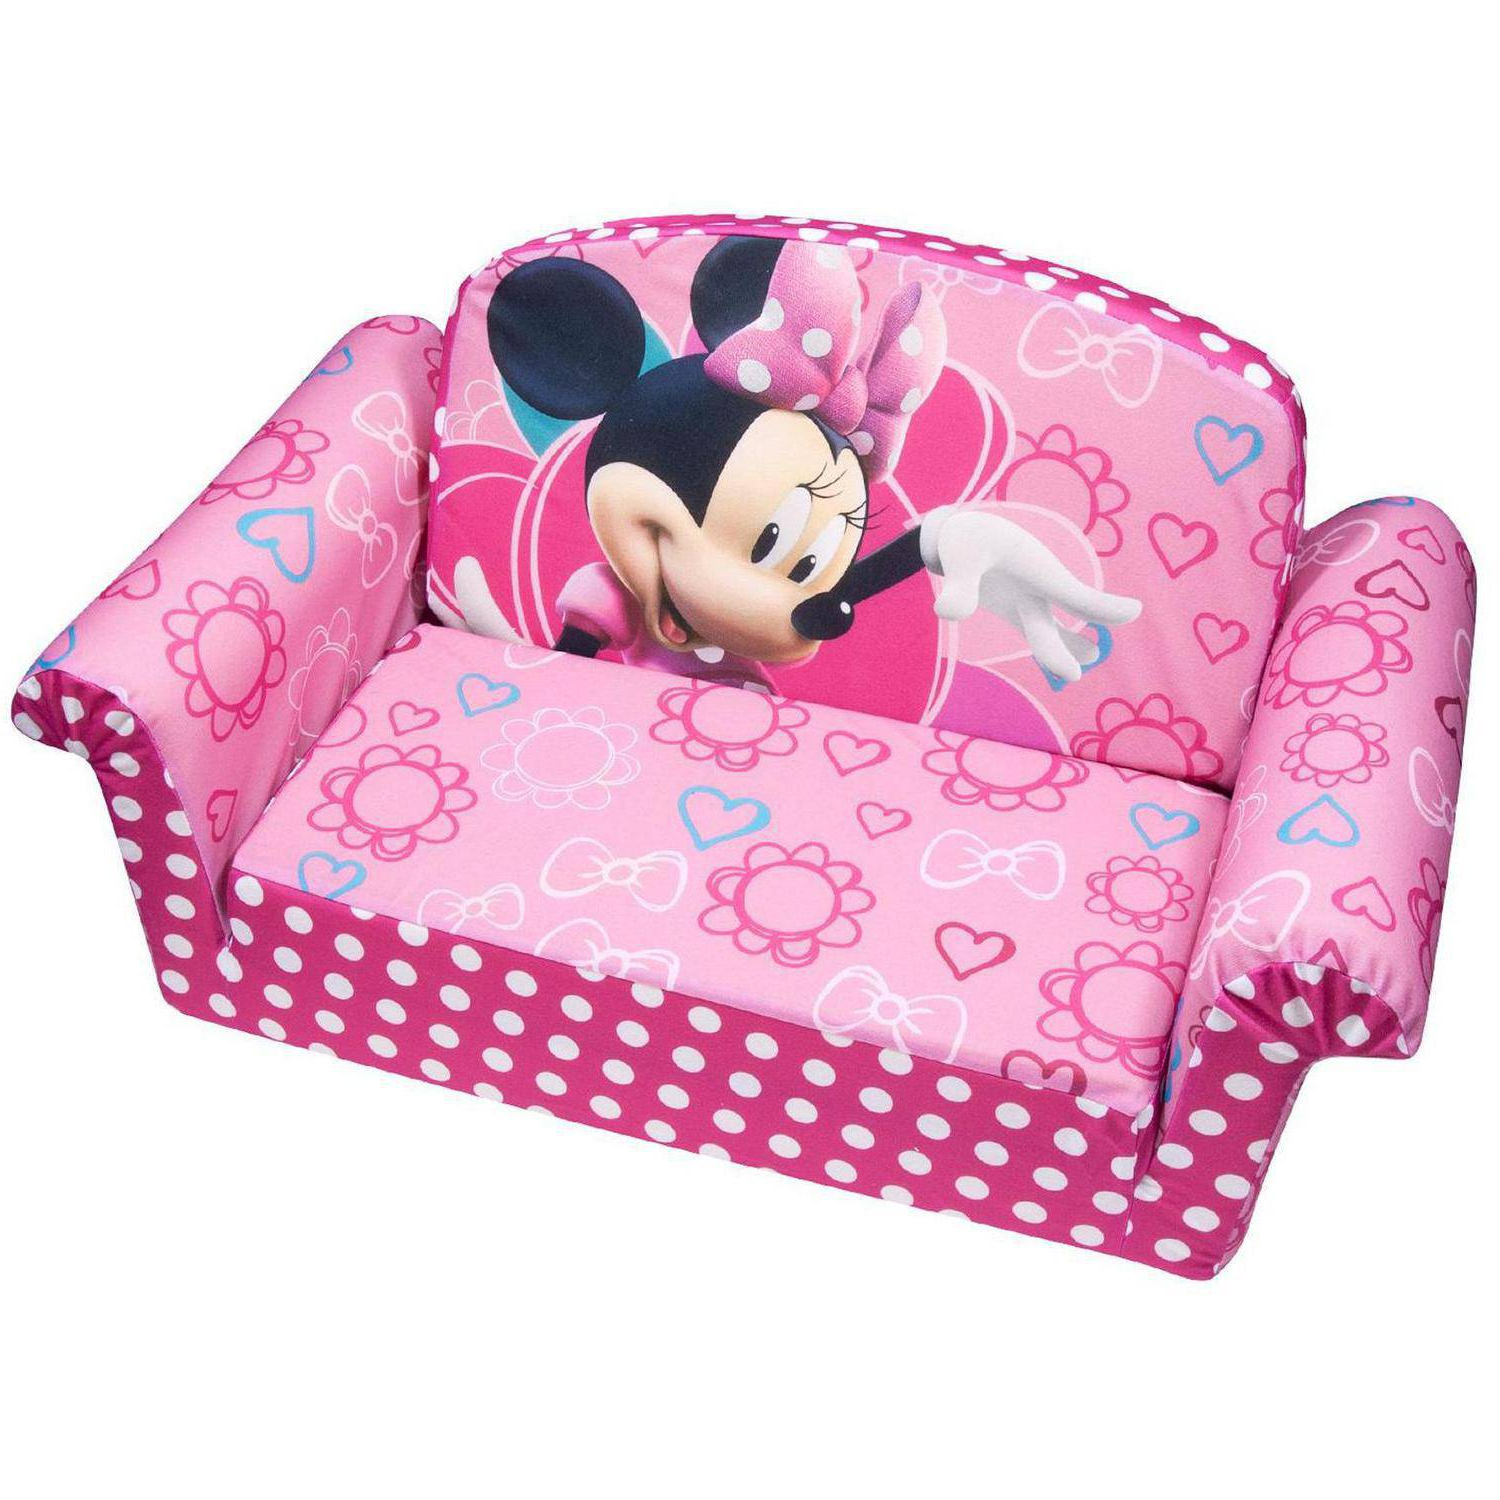 2019 Marshmallow Furniture, Children's 2 In 1 Flip Open Foam Sofa Intended For Toddler Sofa Chairs (View 2 of 20)